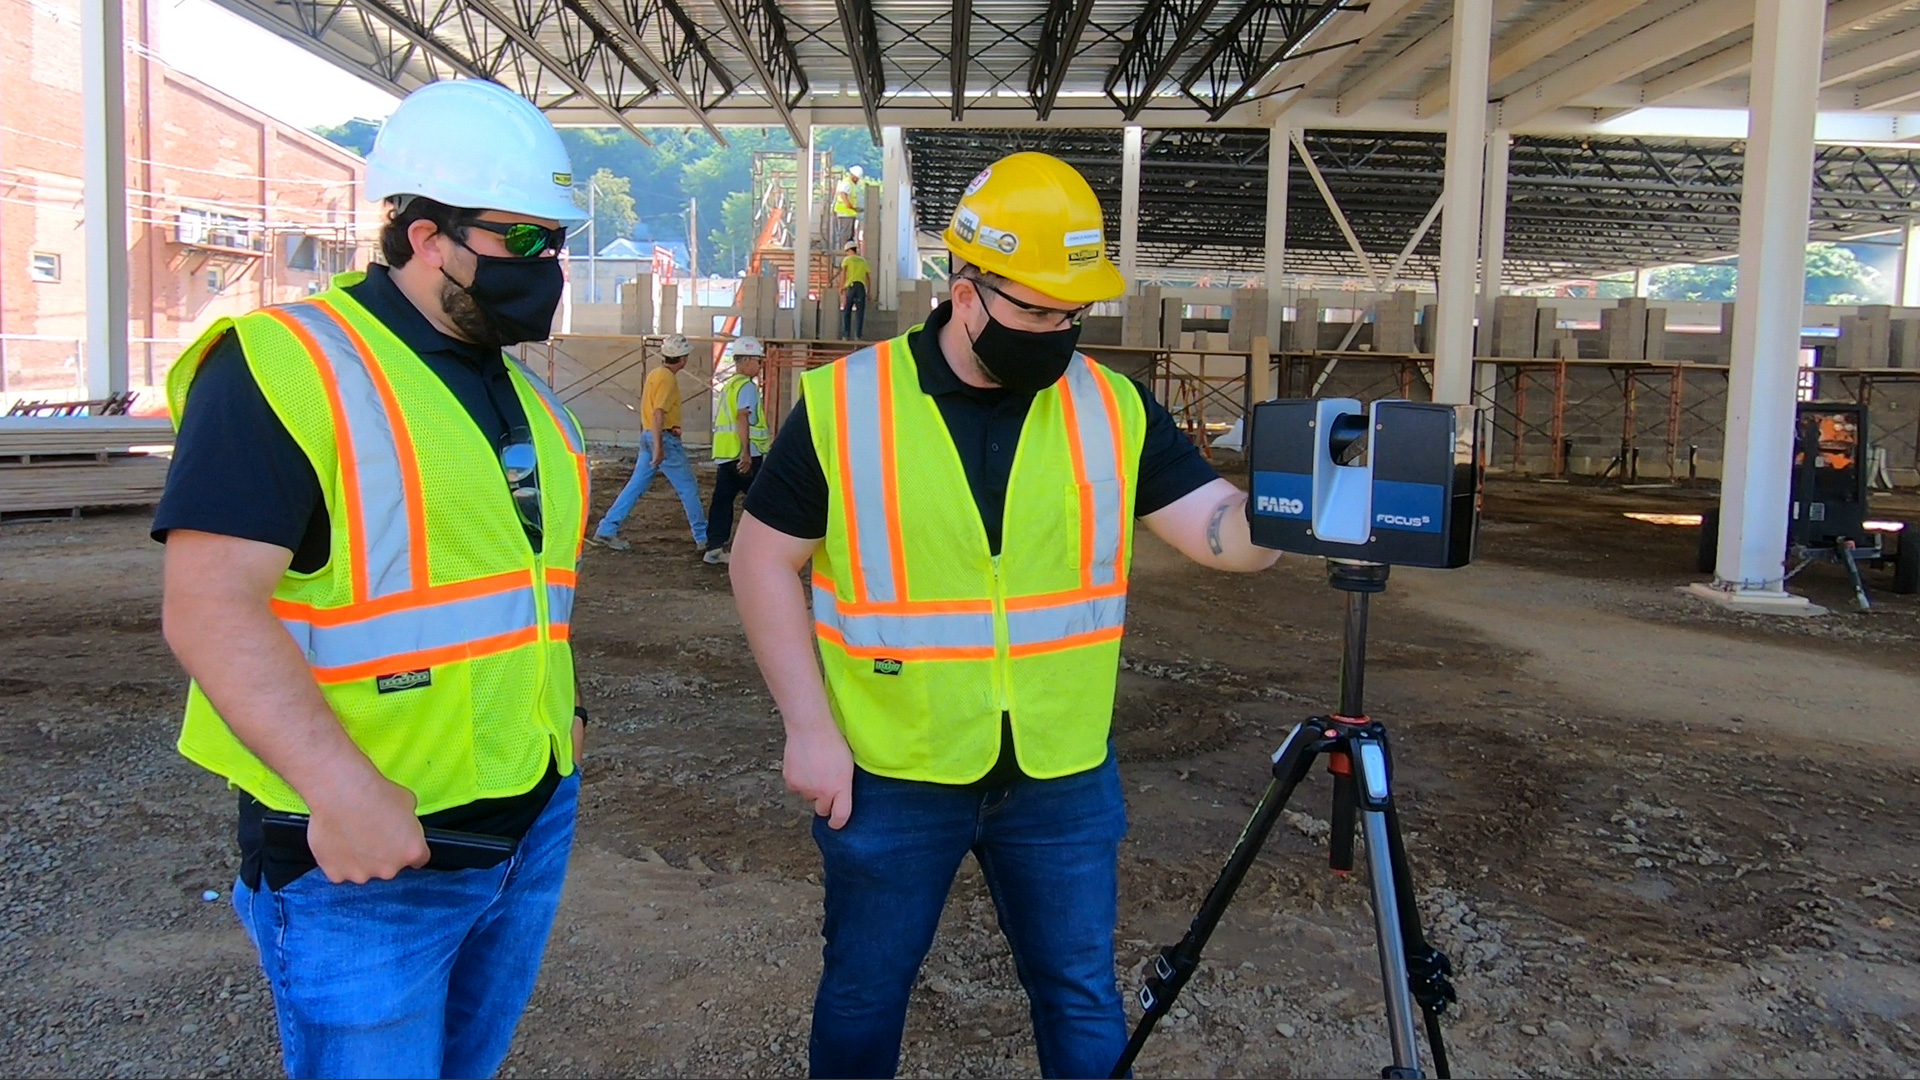 Focus Faro Scanning on job site